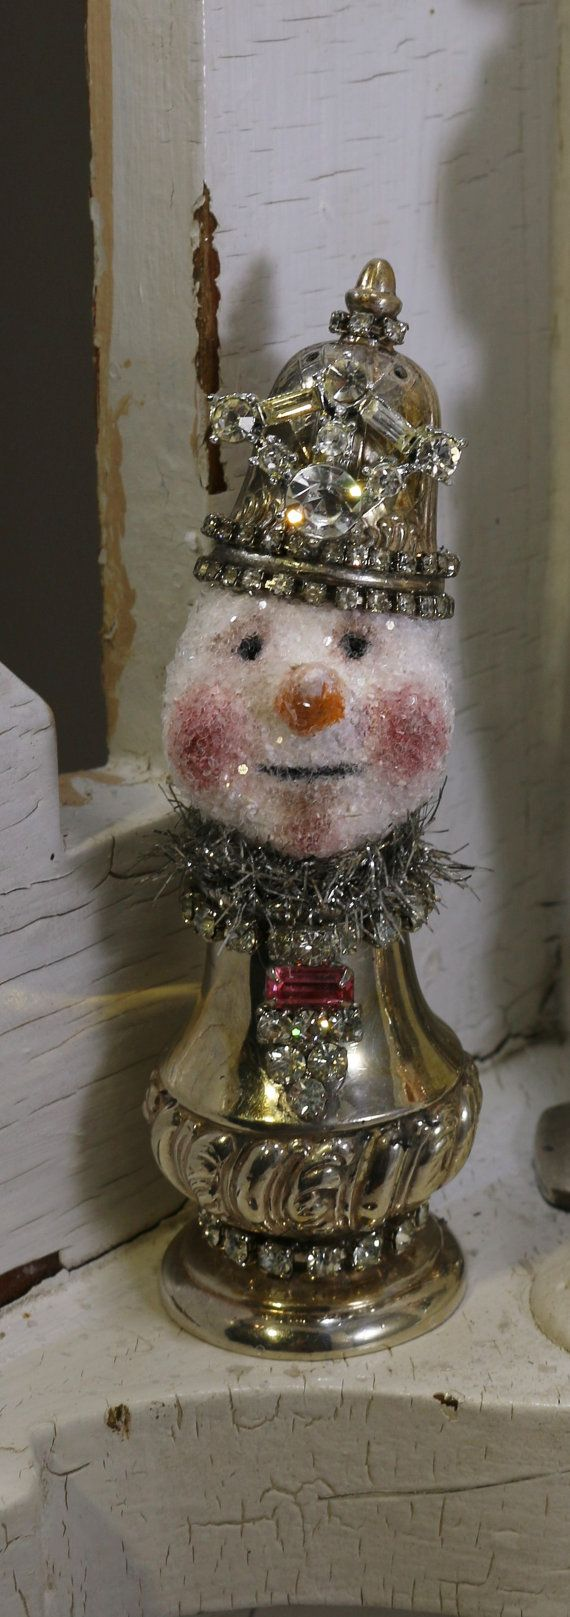 SNOWMAN Assemblage,  Mixed Media Original, Christmas Collectable, Salt Shaker SNOW-LADY, Handmade by Lori Cottam